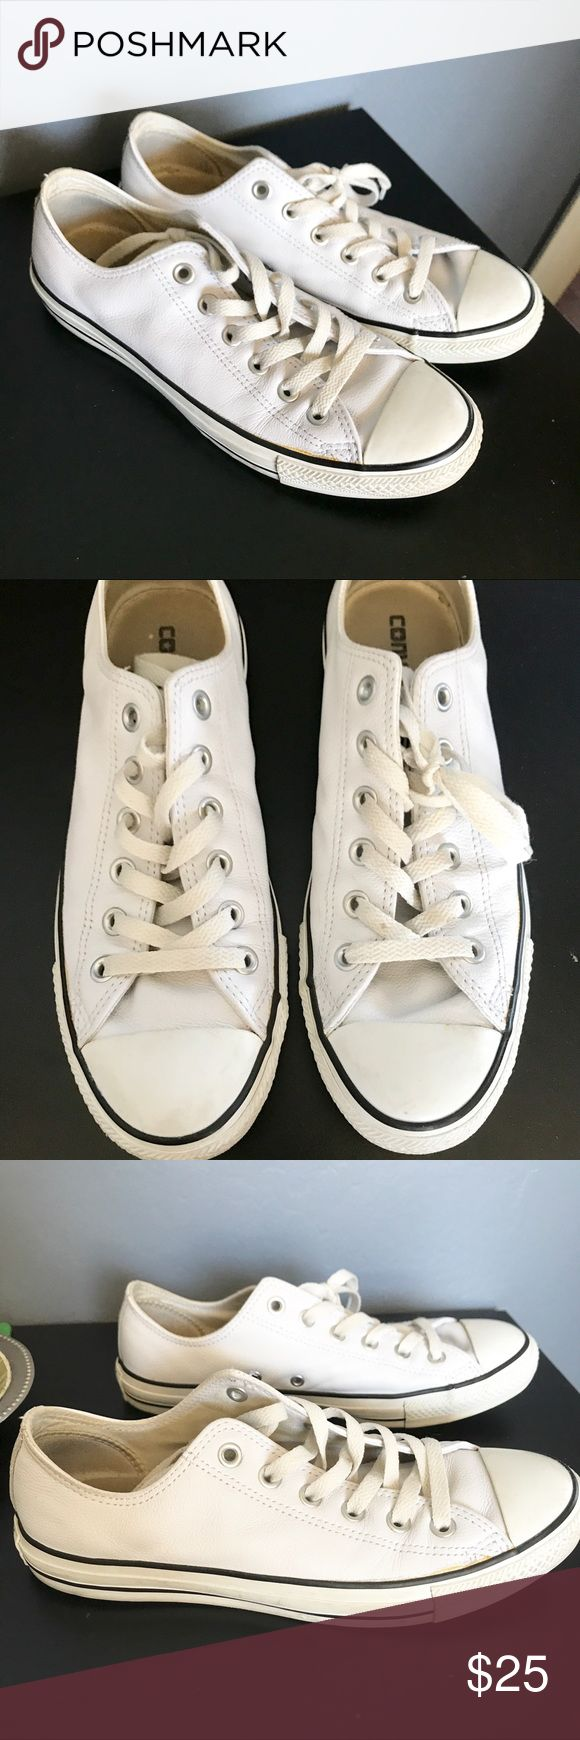 All white leather Converse Pure white leather converse! Very lightly worn with leather in great color condition! Laces can be bought to make them look new! Make me offers the price is negotiable Converse Shoes Sneakers